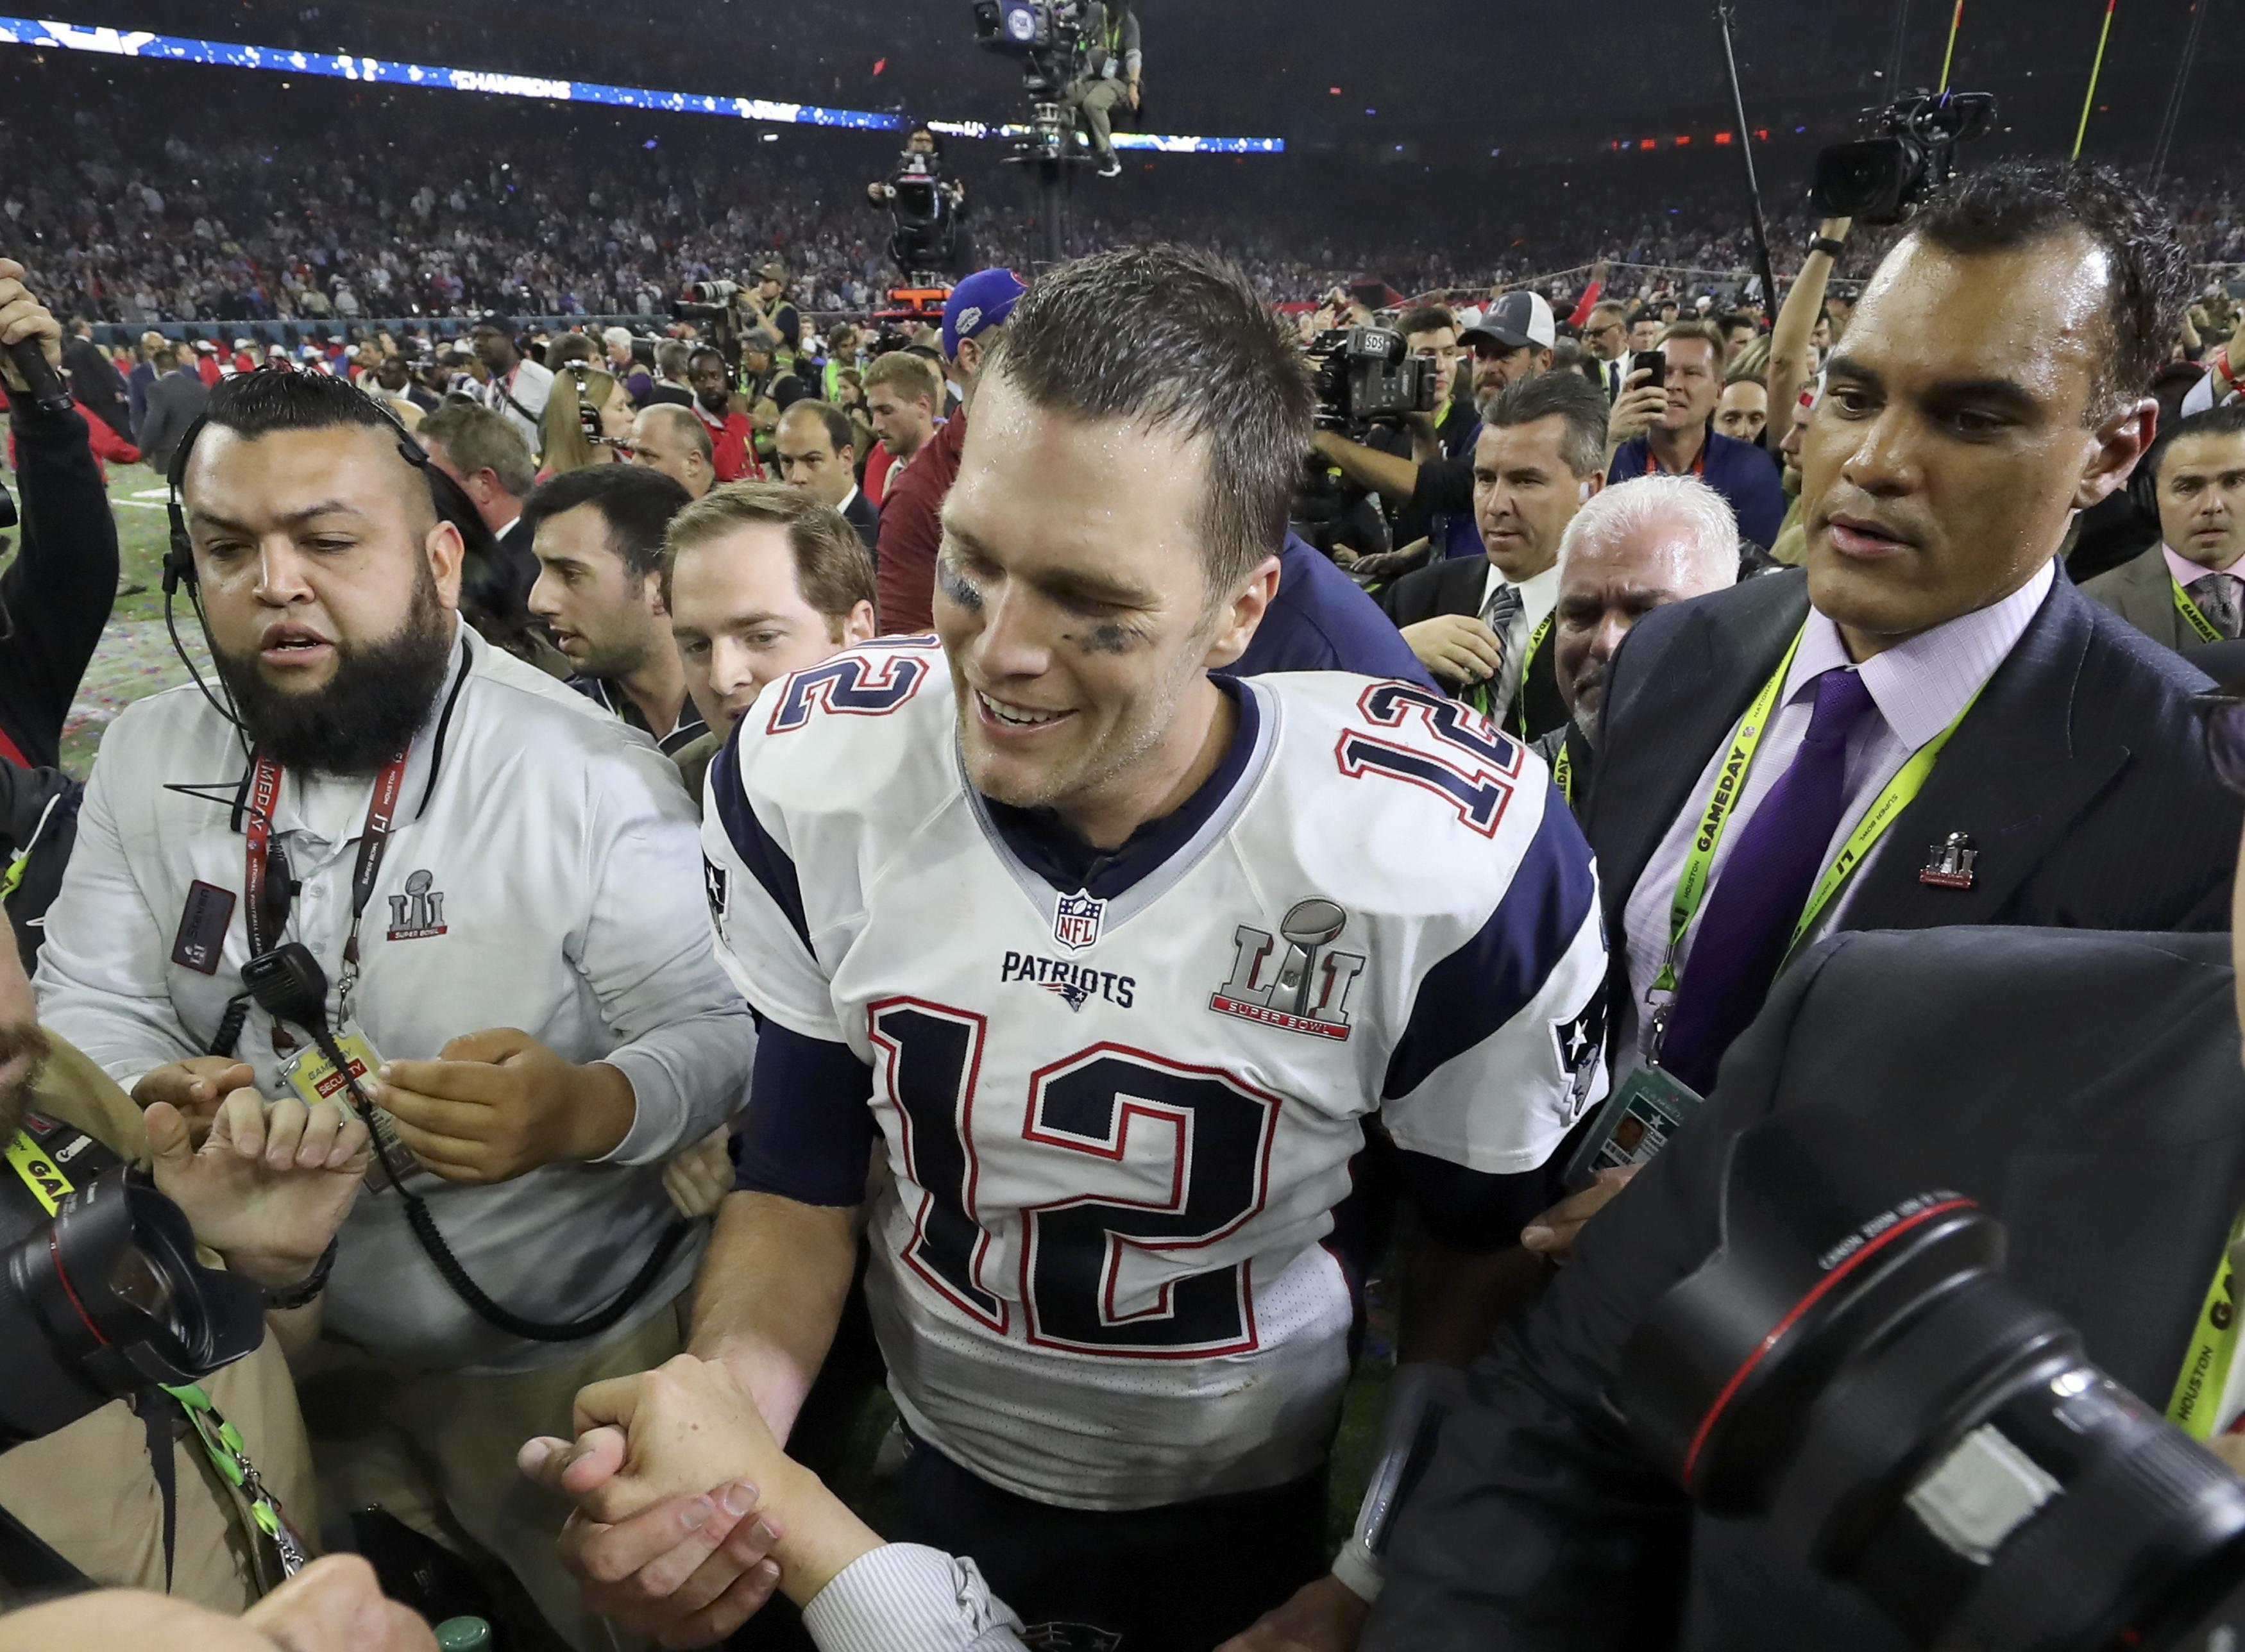 d61545bfe517db Tom Brady says his Super Bowl LI jersey missing, likely stolen - CBS ...